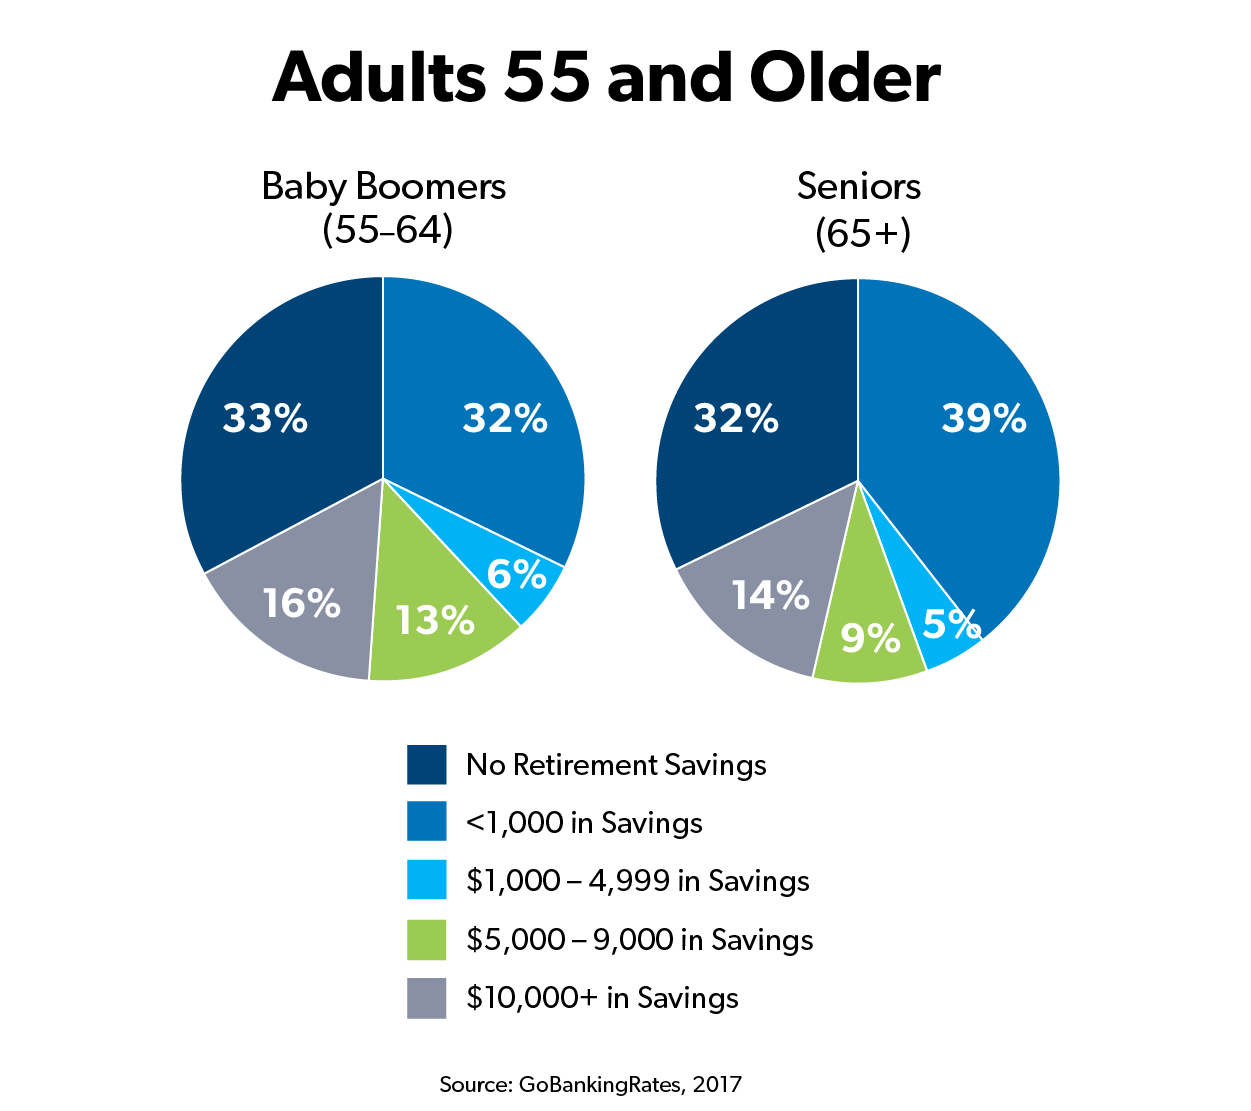 Percentage of retirement savings for adults 55 and older